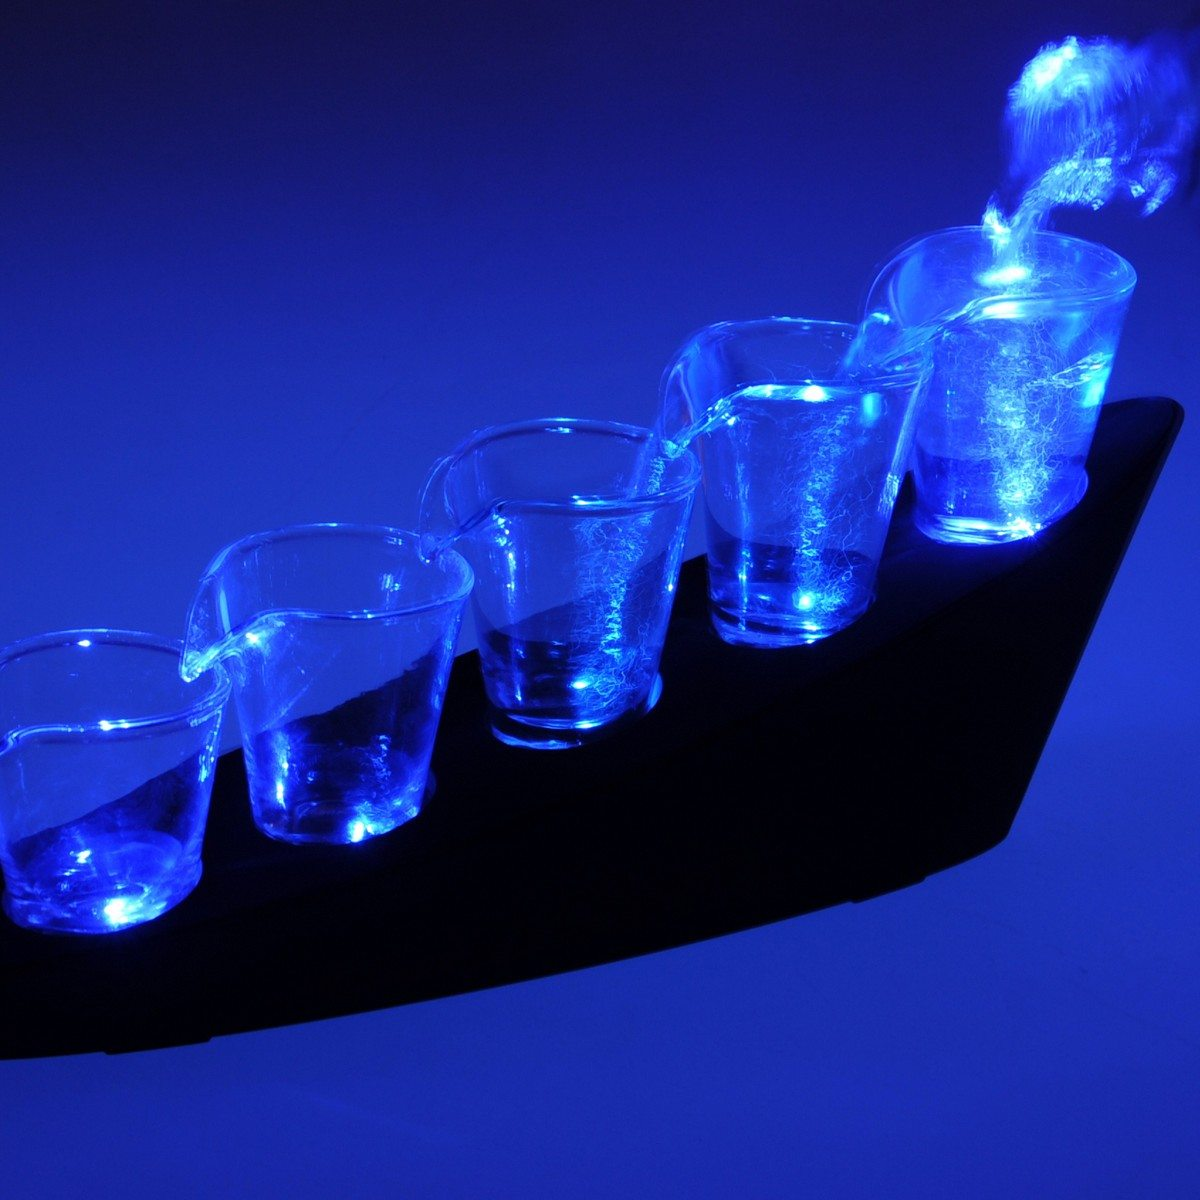 Shots Domino - Set de 5 verres